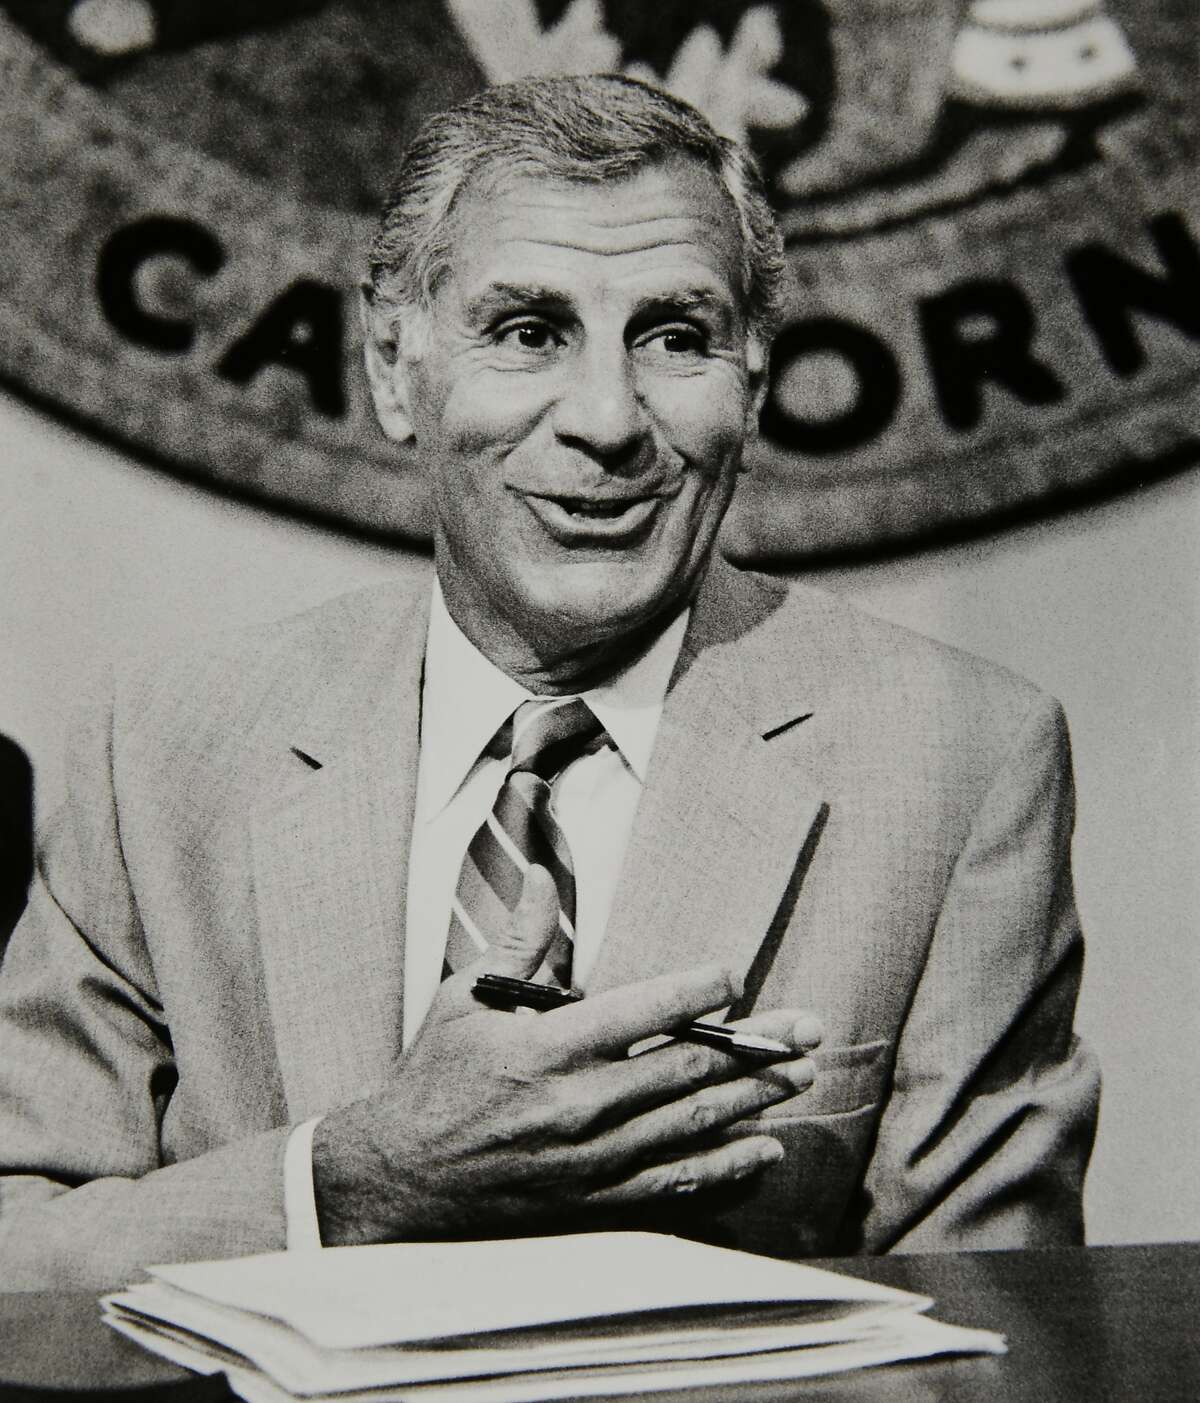 """Gov. George Deukmejian talks with reporters at his office in the Capitol in Sacramento on Sept. 21, 1987.The two-term California governor, whose anti-spending credo earned him the nickname """"The Iron Duke,"""" died Tuesday, May 8, 2018, of natural causes, a former chief of staff said. He was 89."""